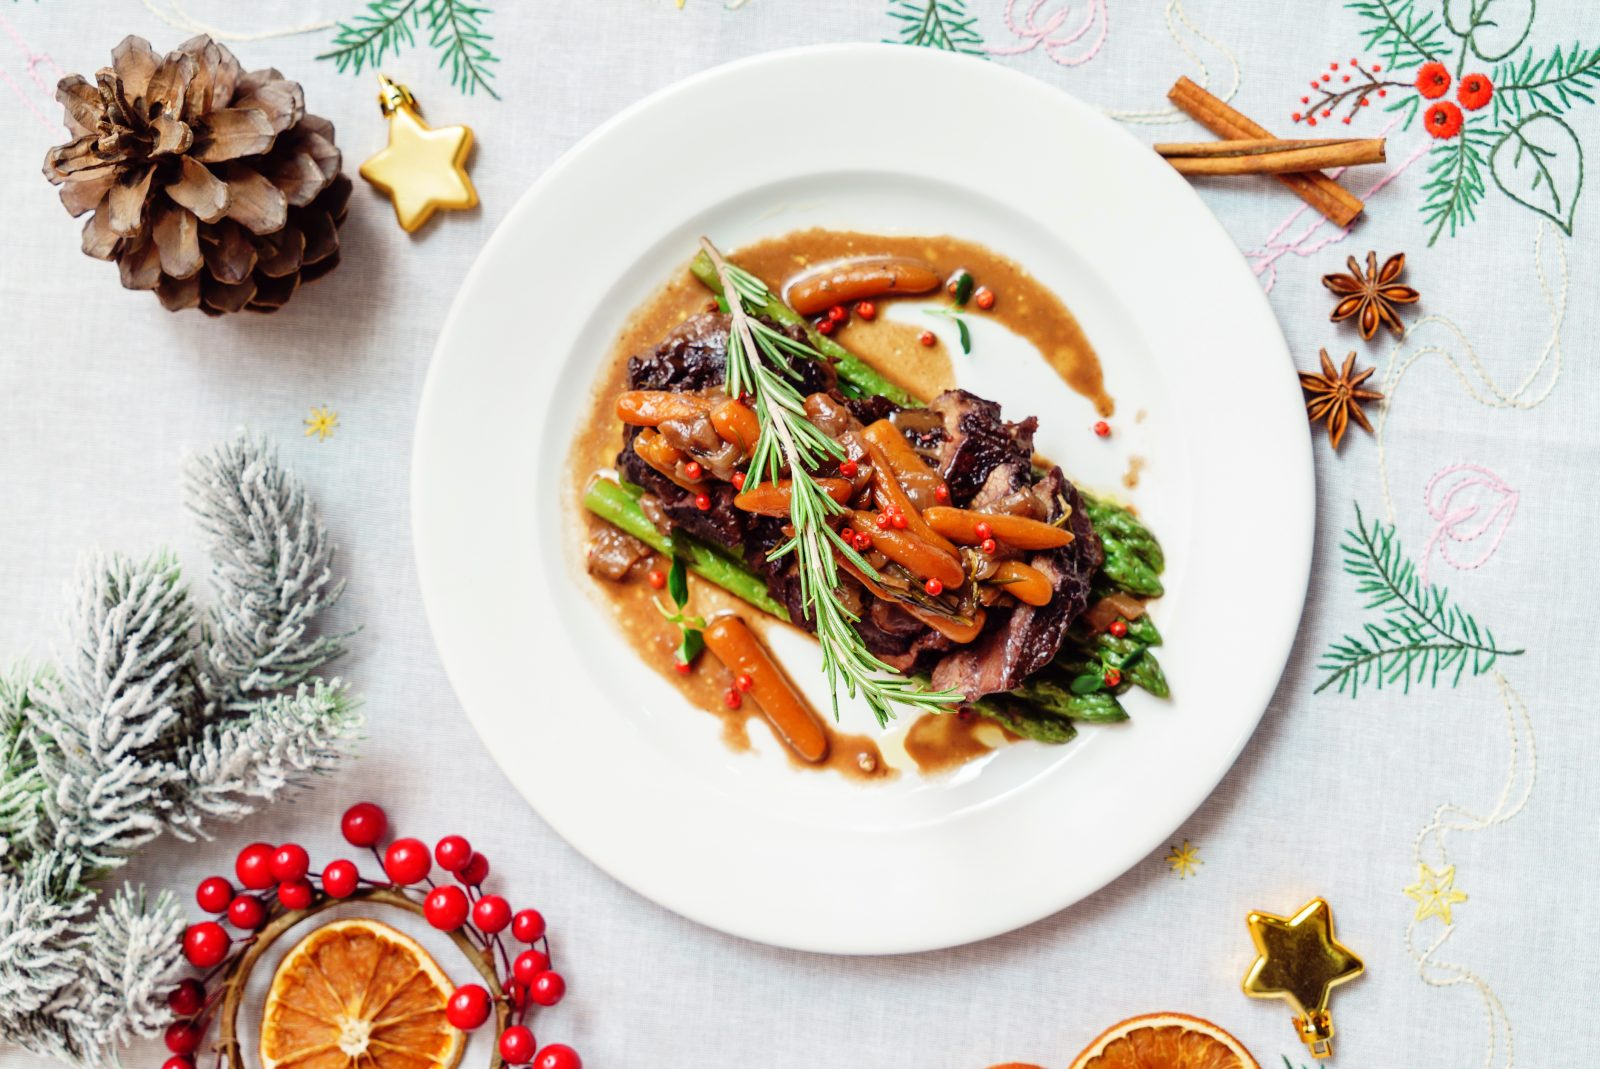 Where to Book Your Christmas Meal 2018